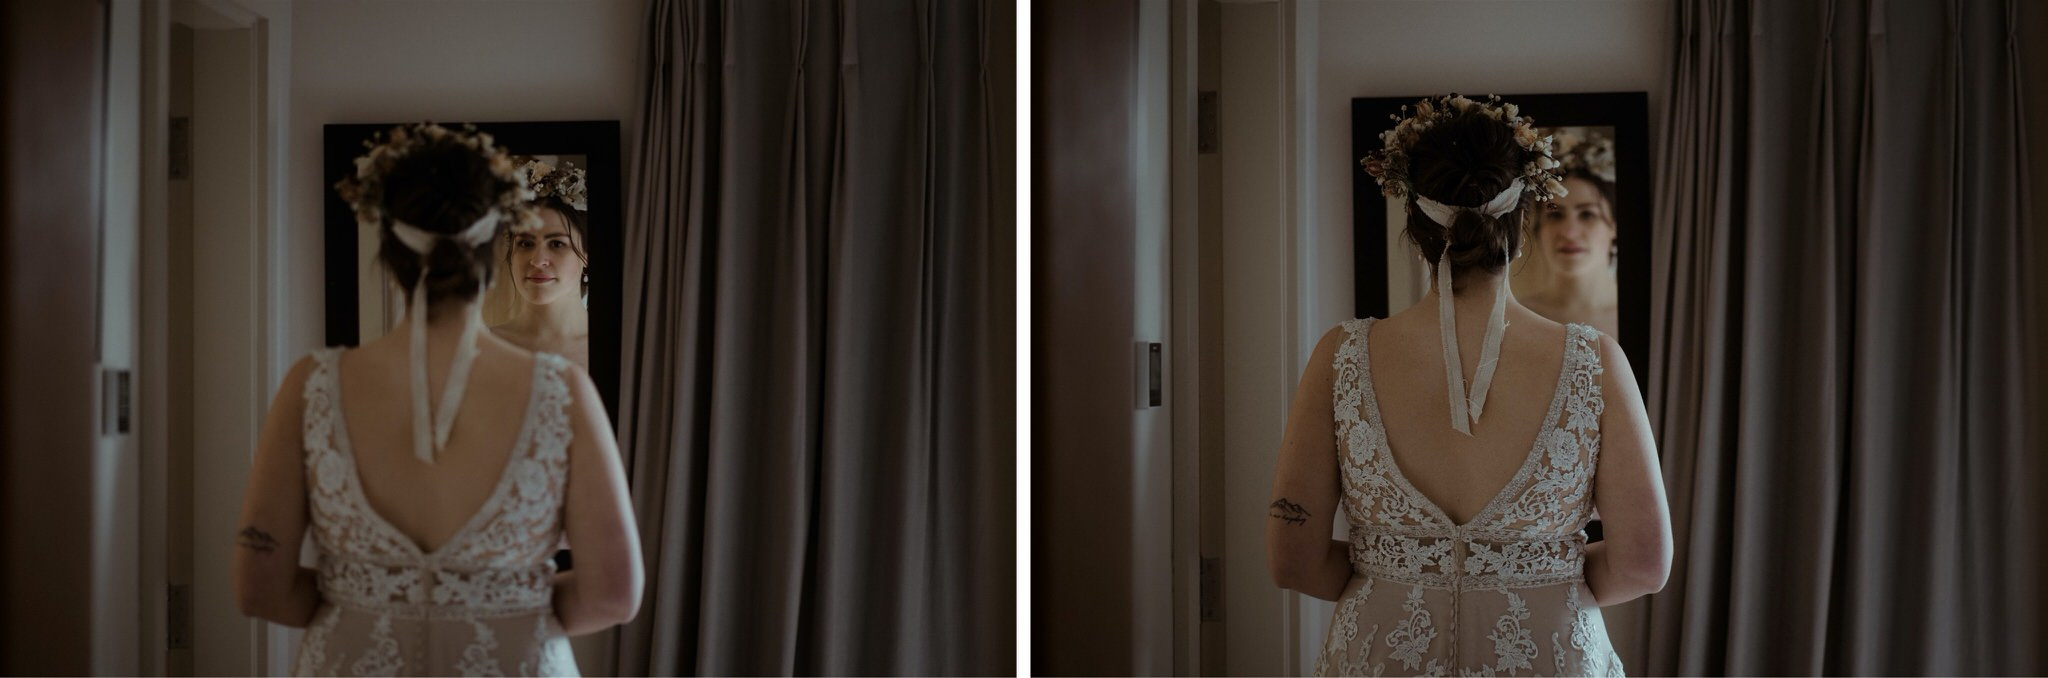 Bride looks at herself in a mirror before her elopement wedding in Scotland